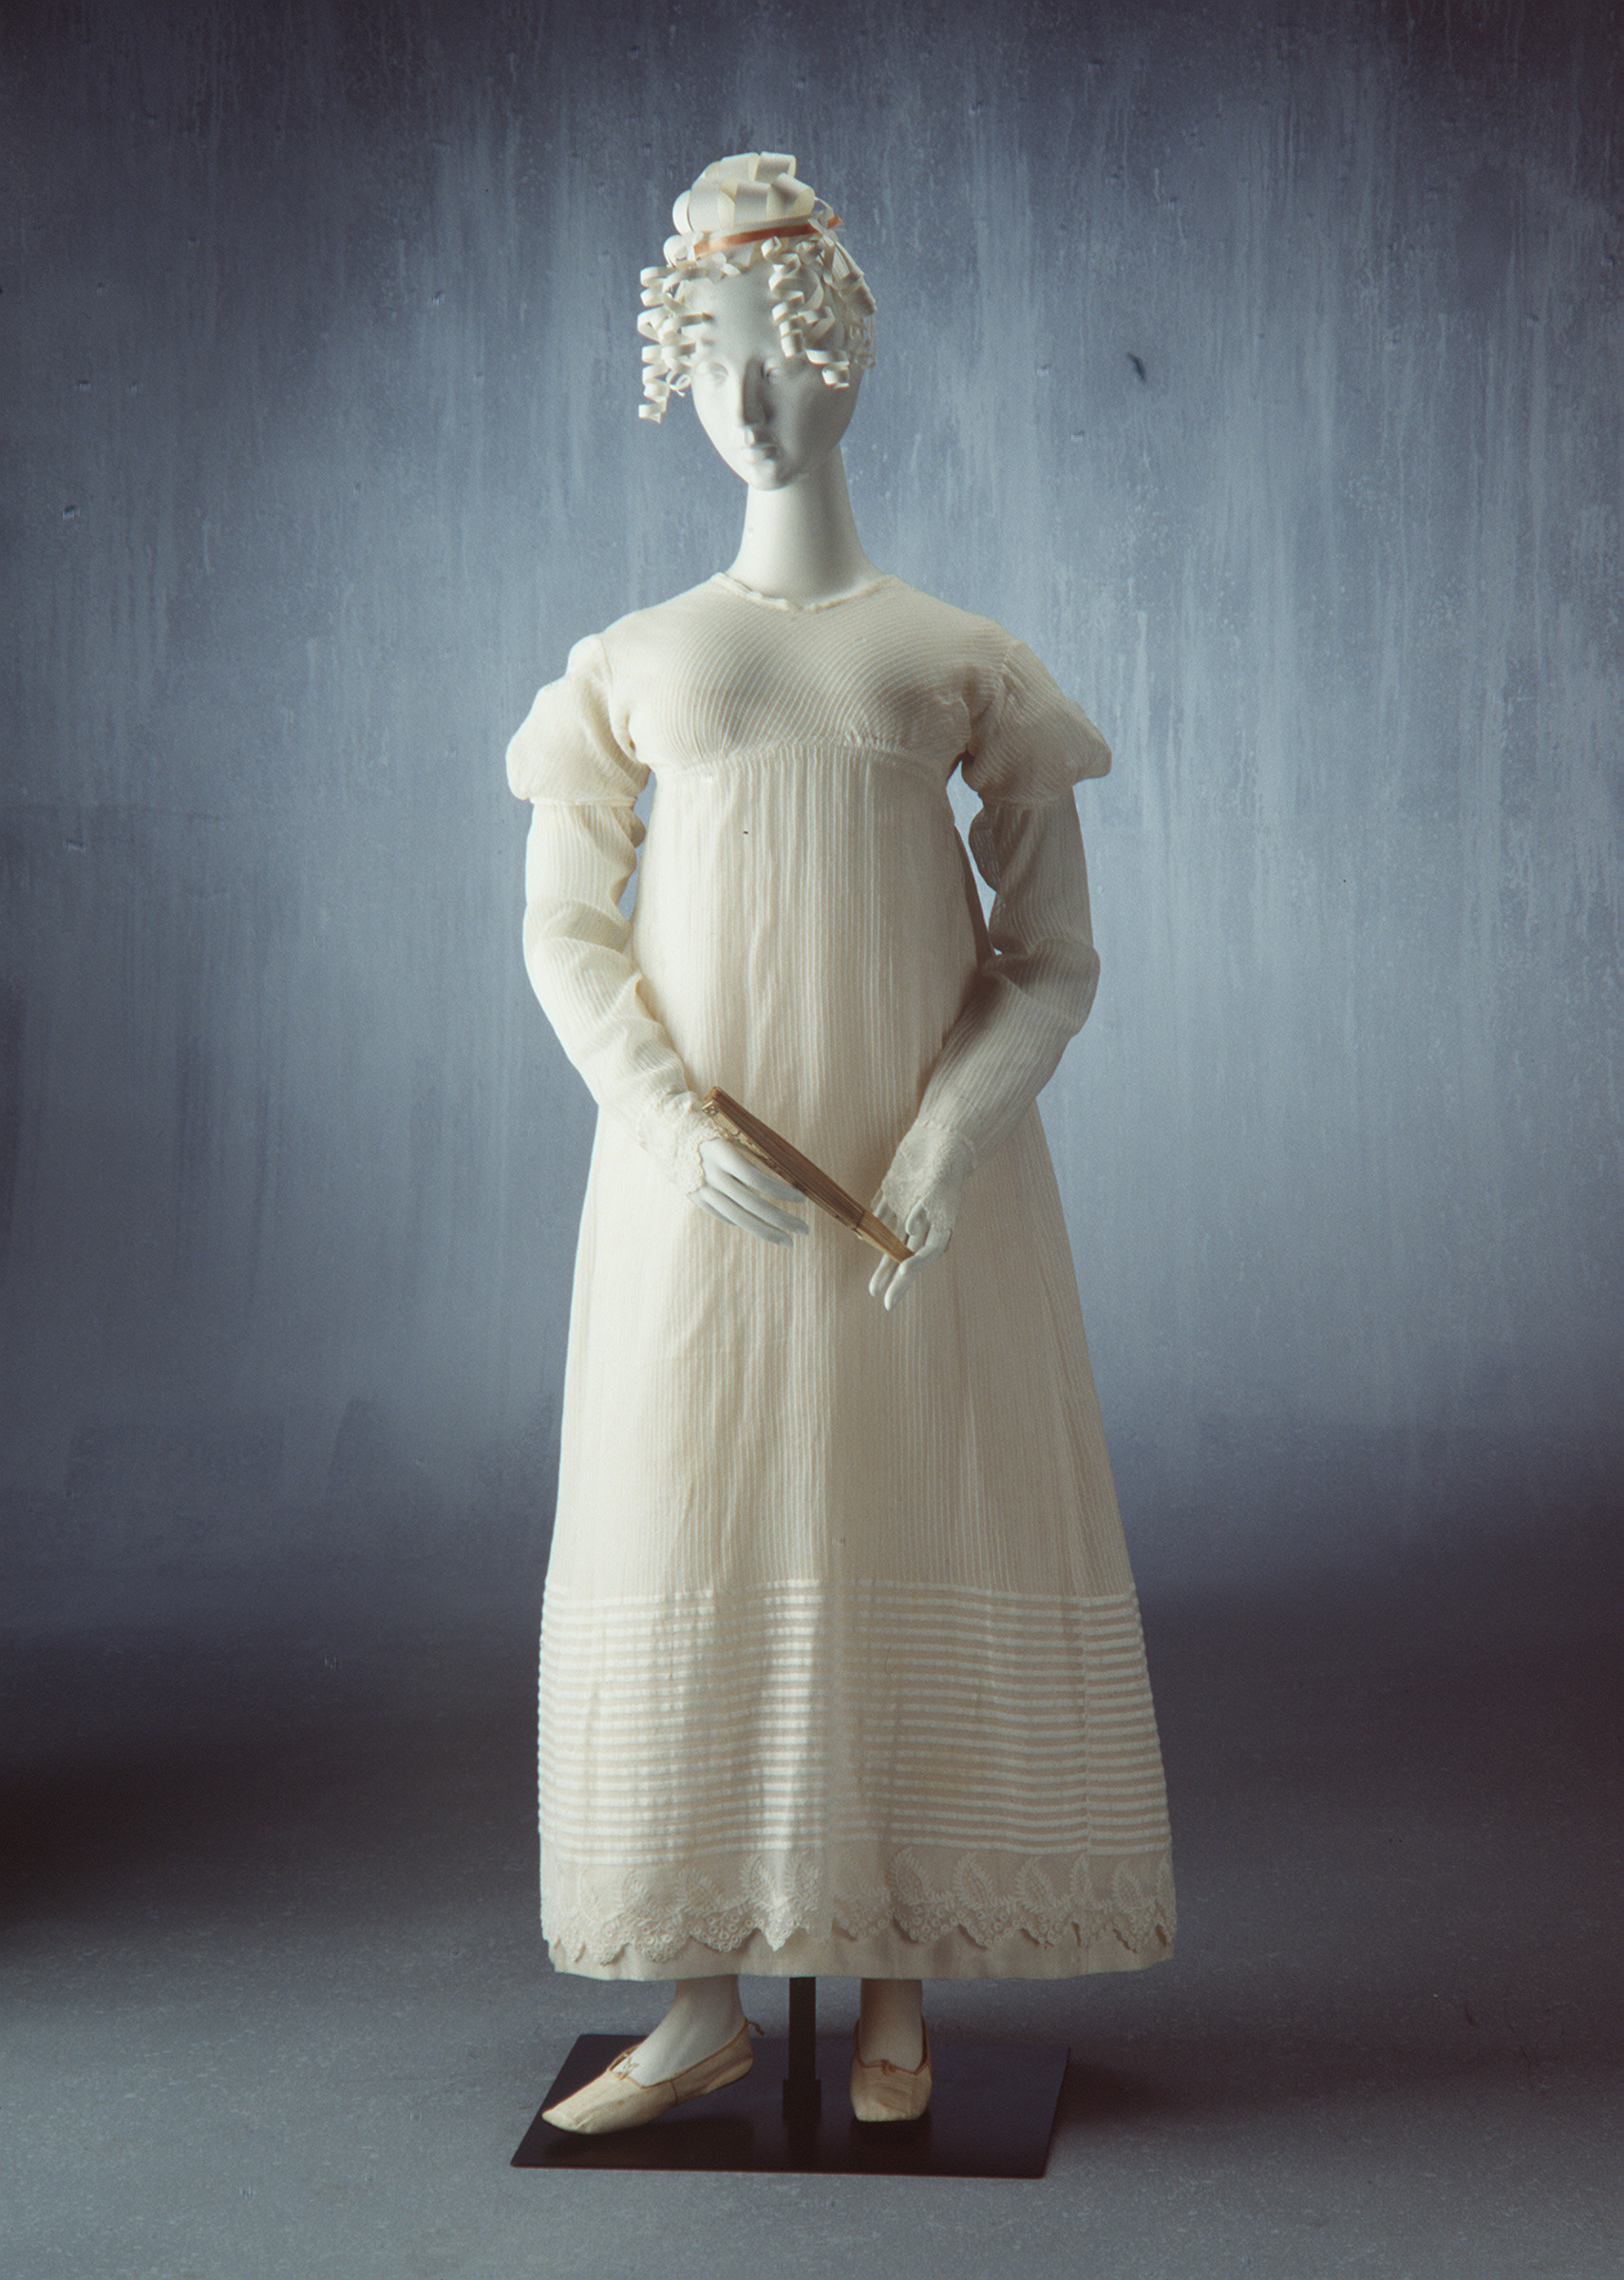 Ball gown thought to have been worn by Ann Marsden Collection: Powerhouse Museum, Sydney. Photo: Penelope Clay